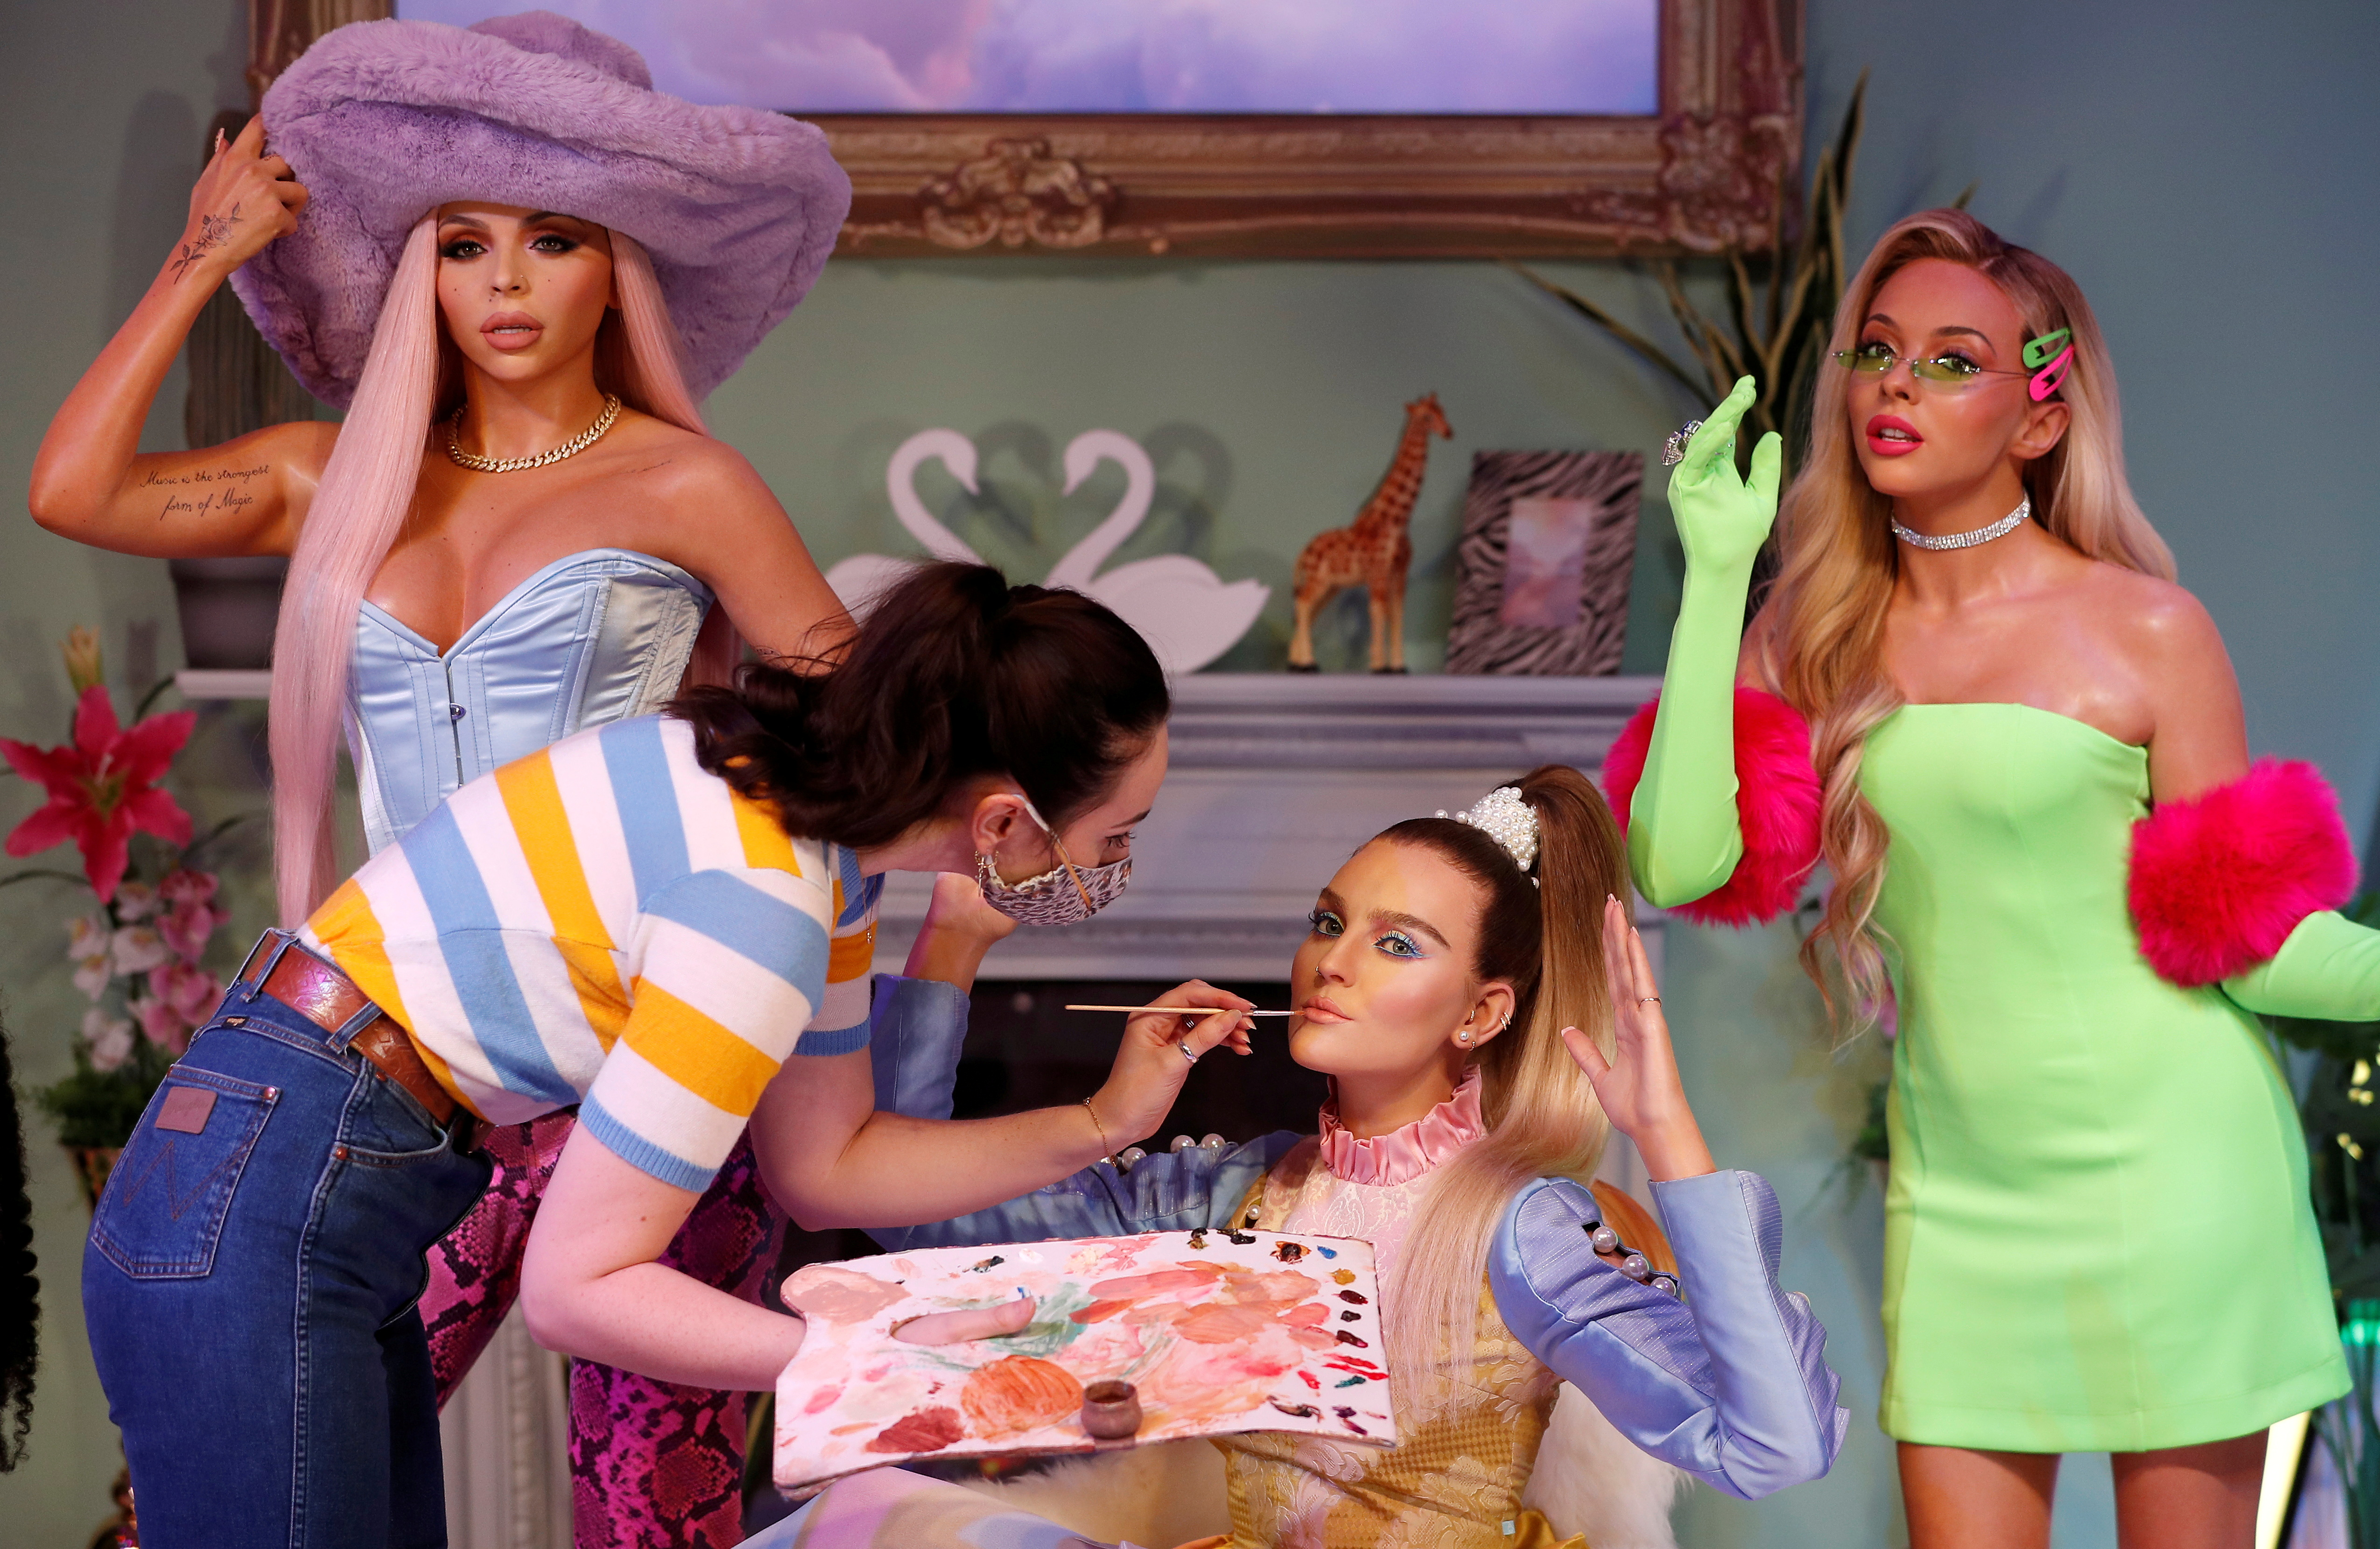 A waxworks artist retouches one of the wax figures at the unveiling of Little Mix waxwork figures at Madame Tussauds, in London, Britain, July 28, 2021.  REUTERS/Peter Nicholls     TPX IMAGES OF THE DAY